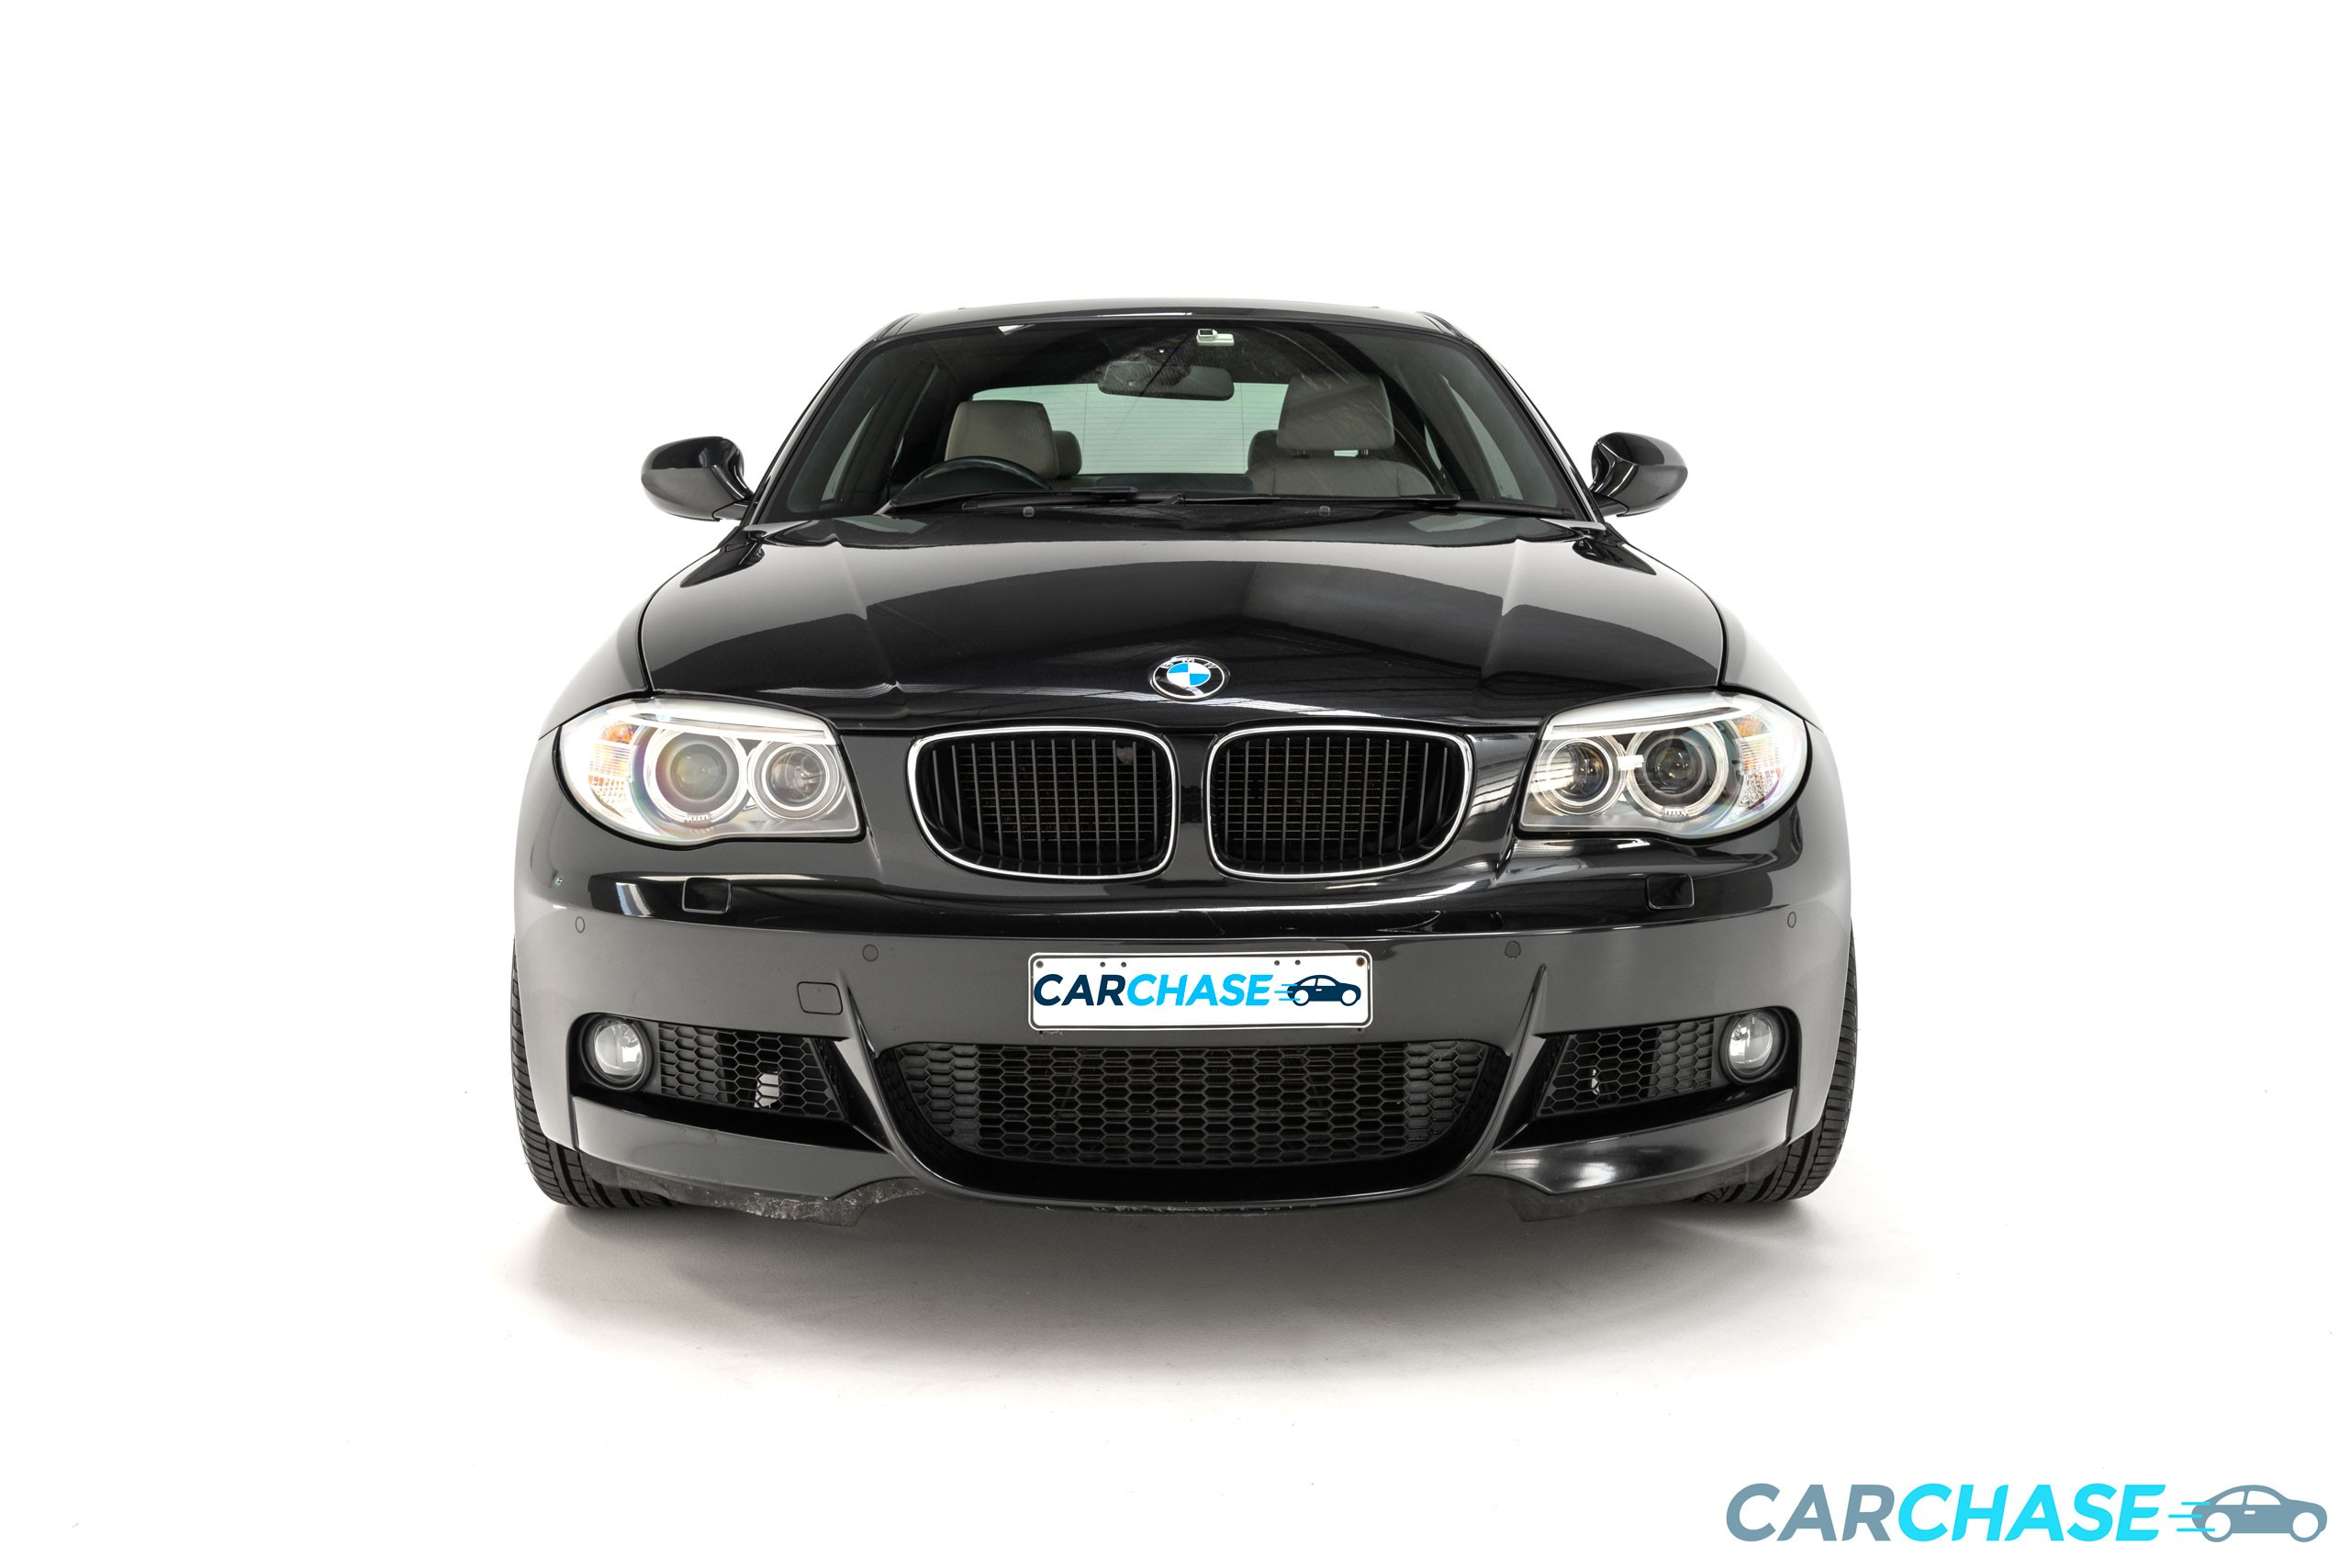 Image of front profile of 2011 BMW 125i